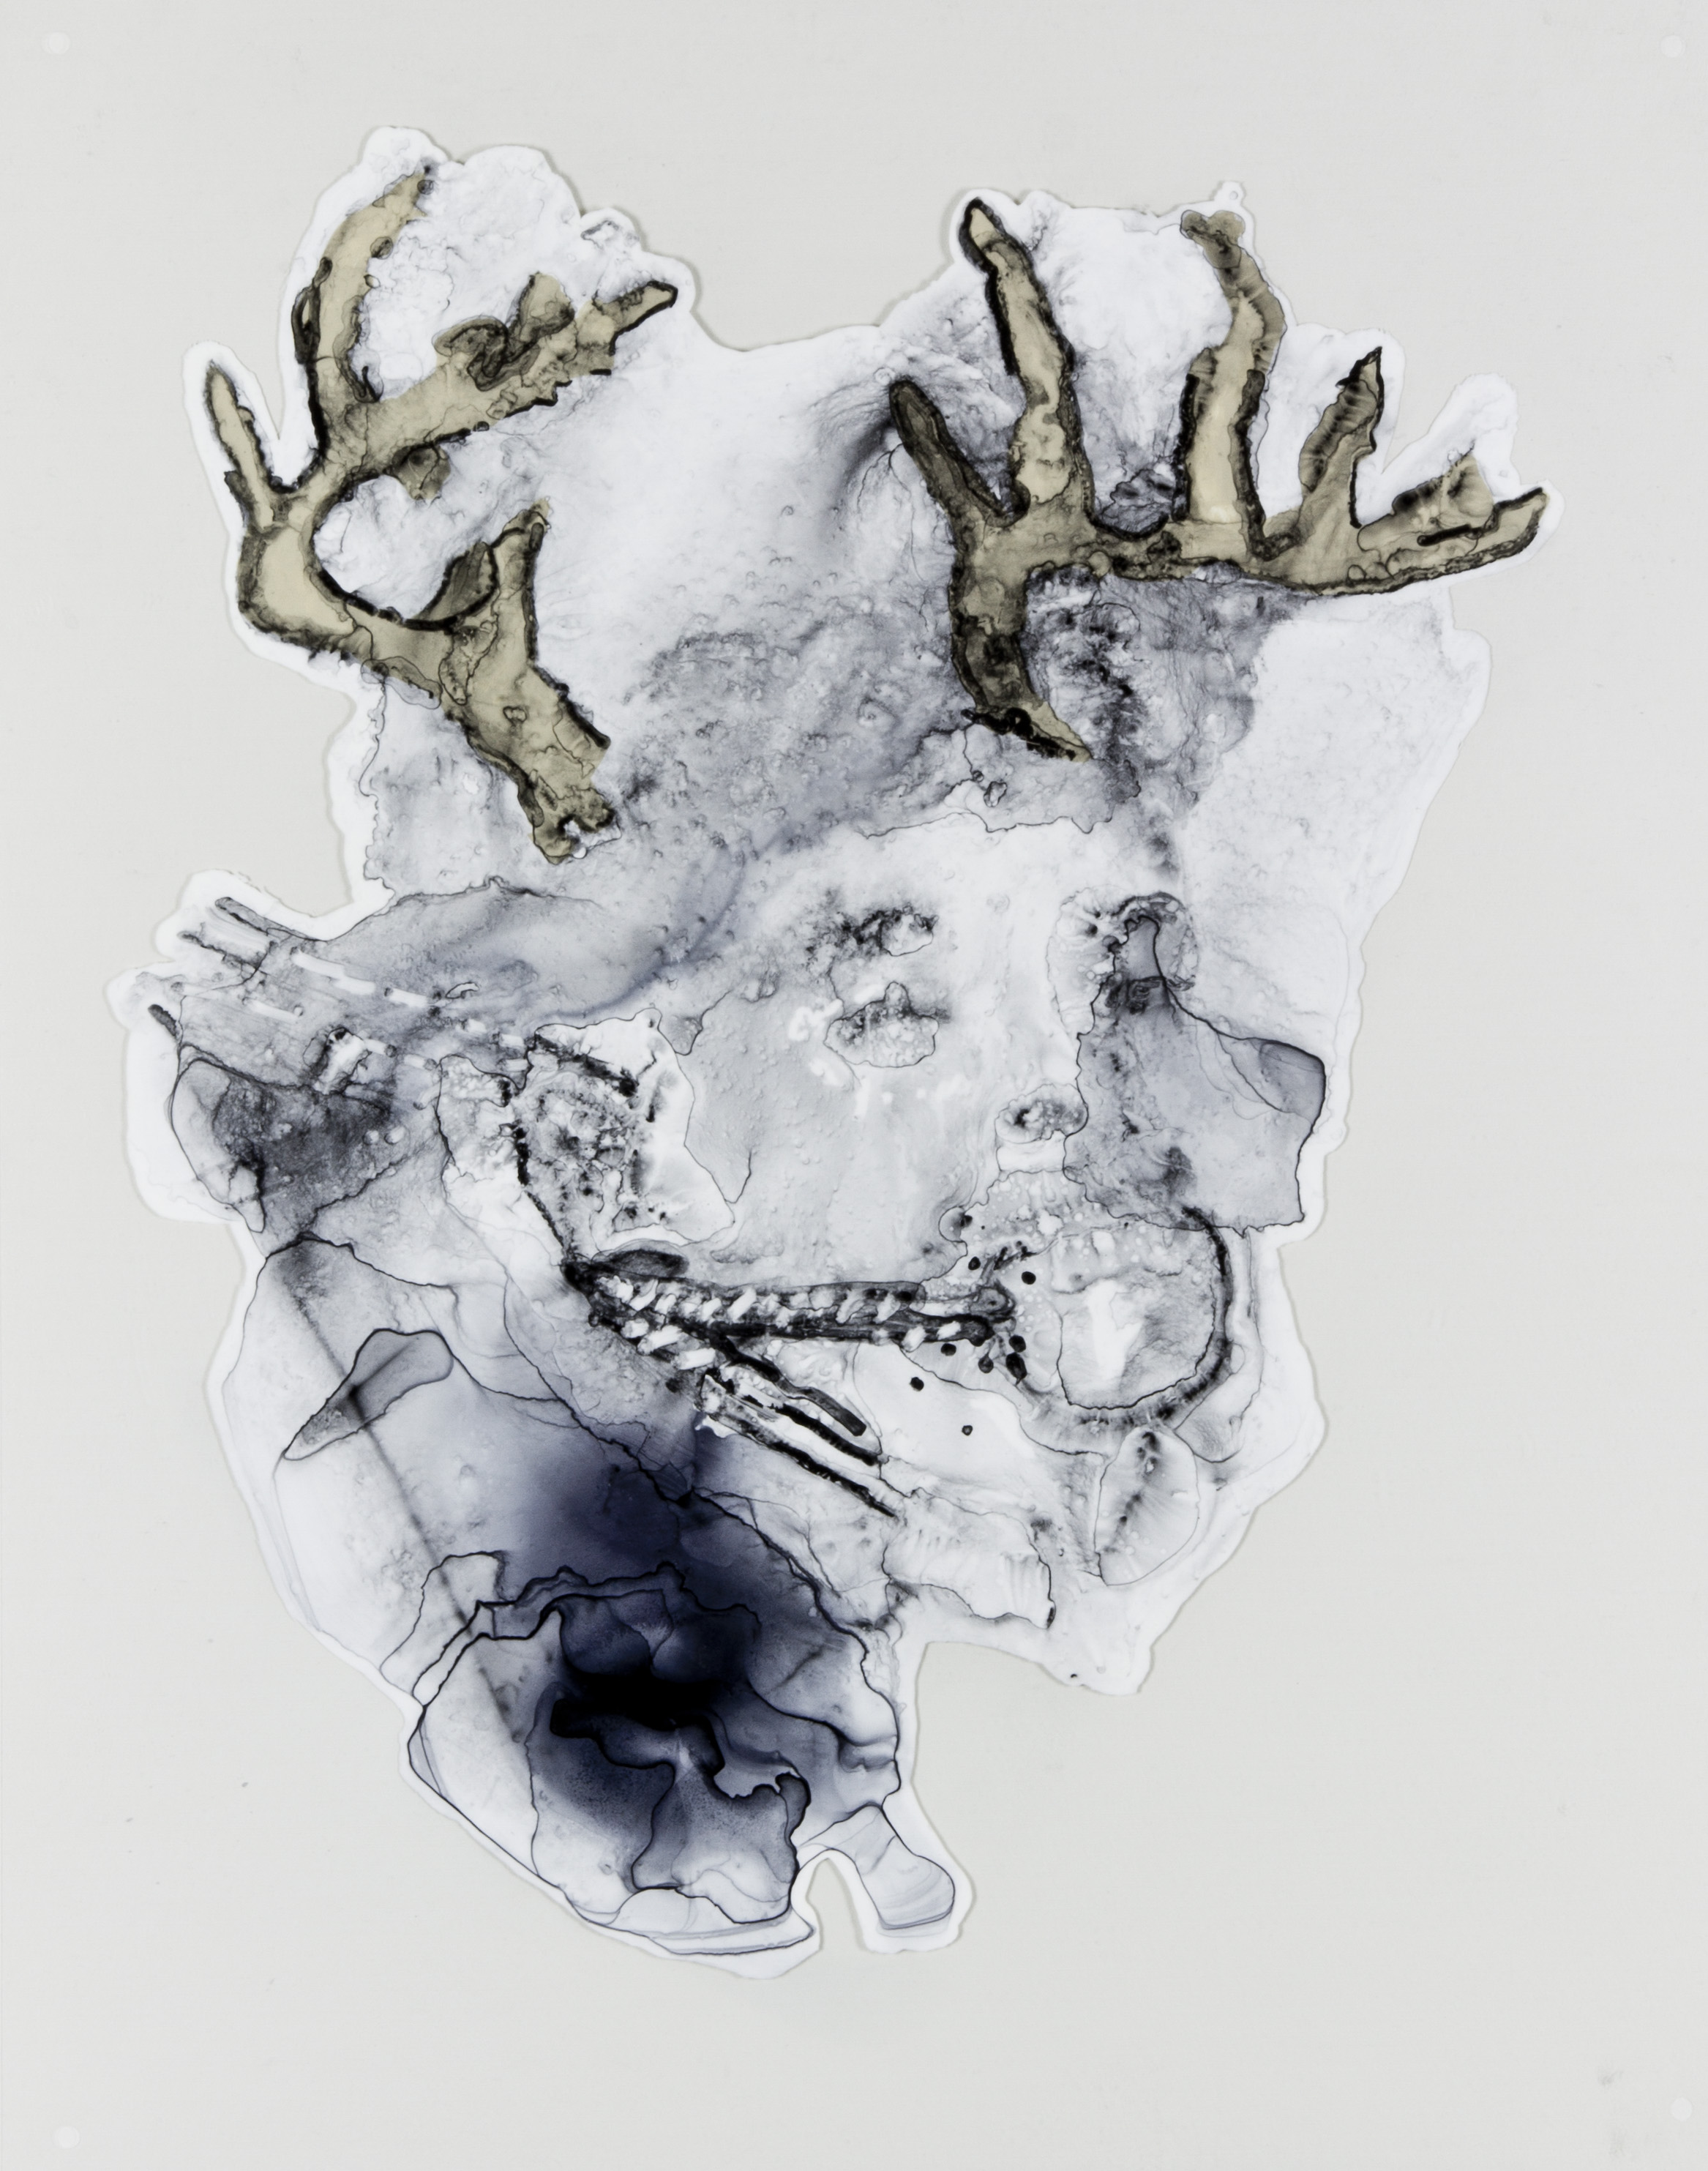 His Antlers were Prominent, 2017, 19x24 inches, Watercolor and acrylic on transparent mylar